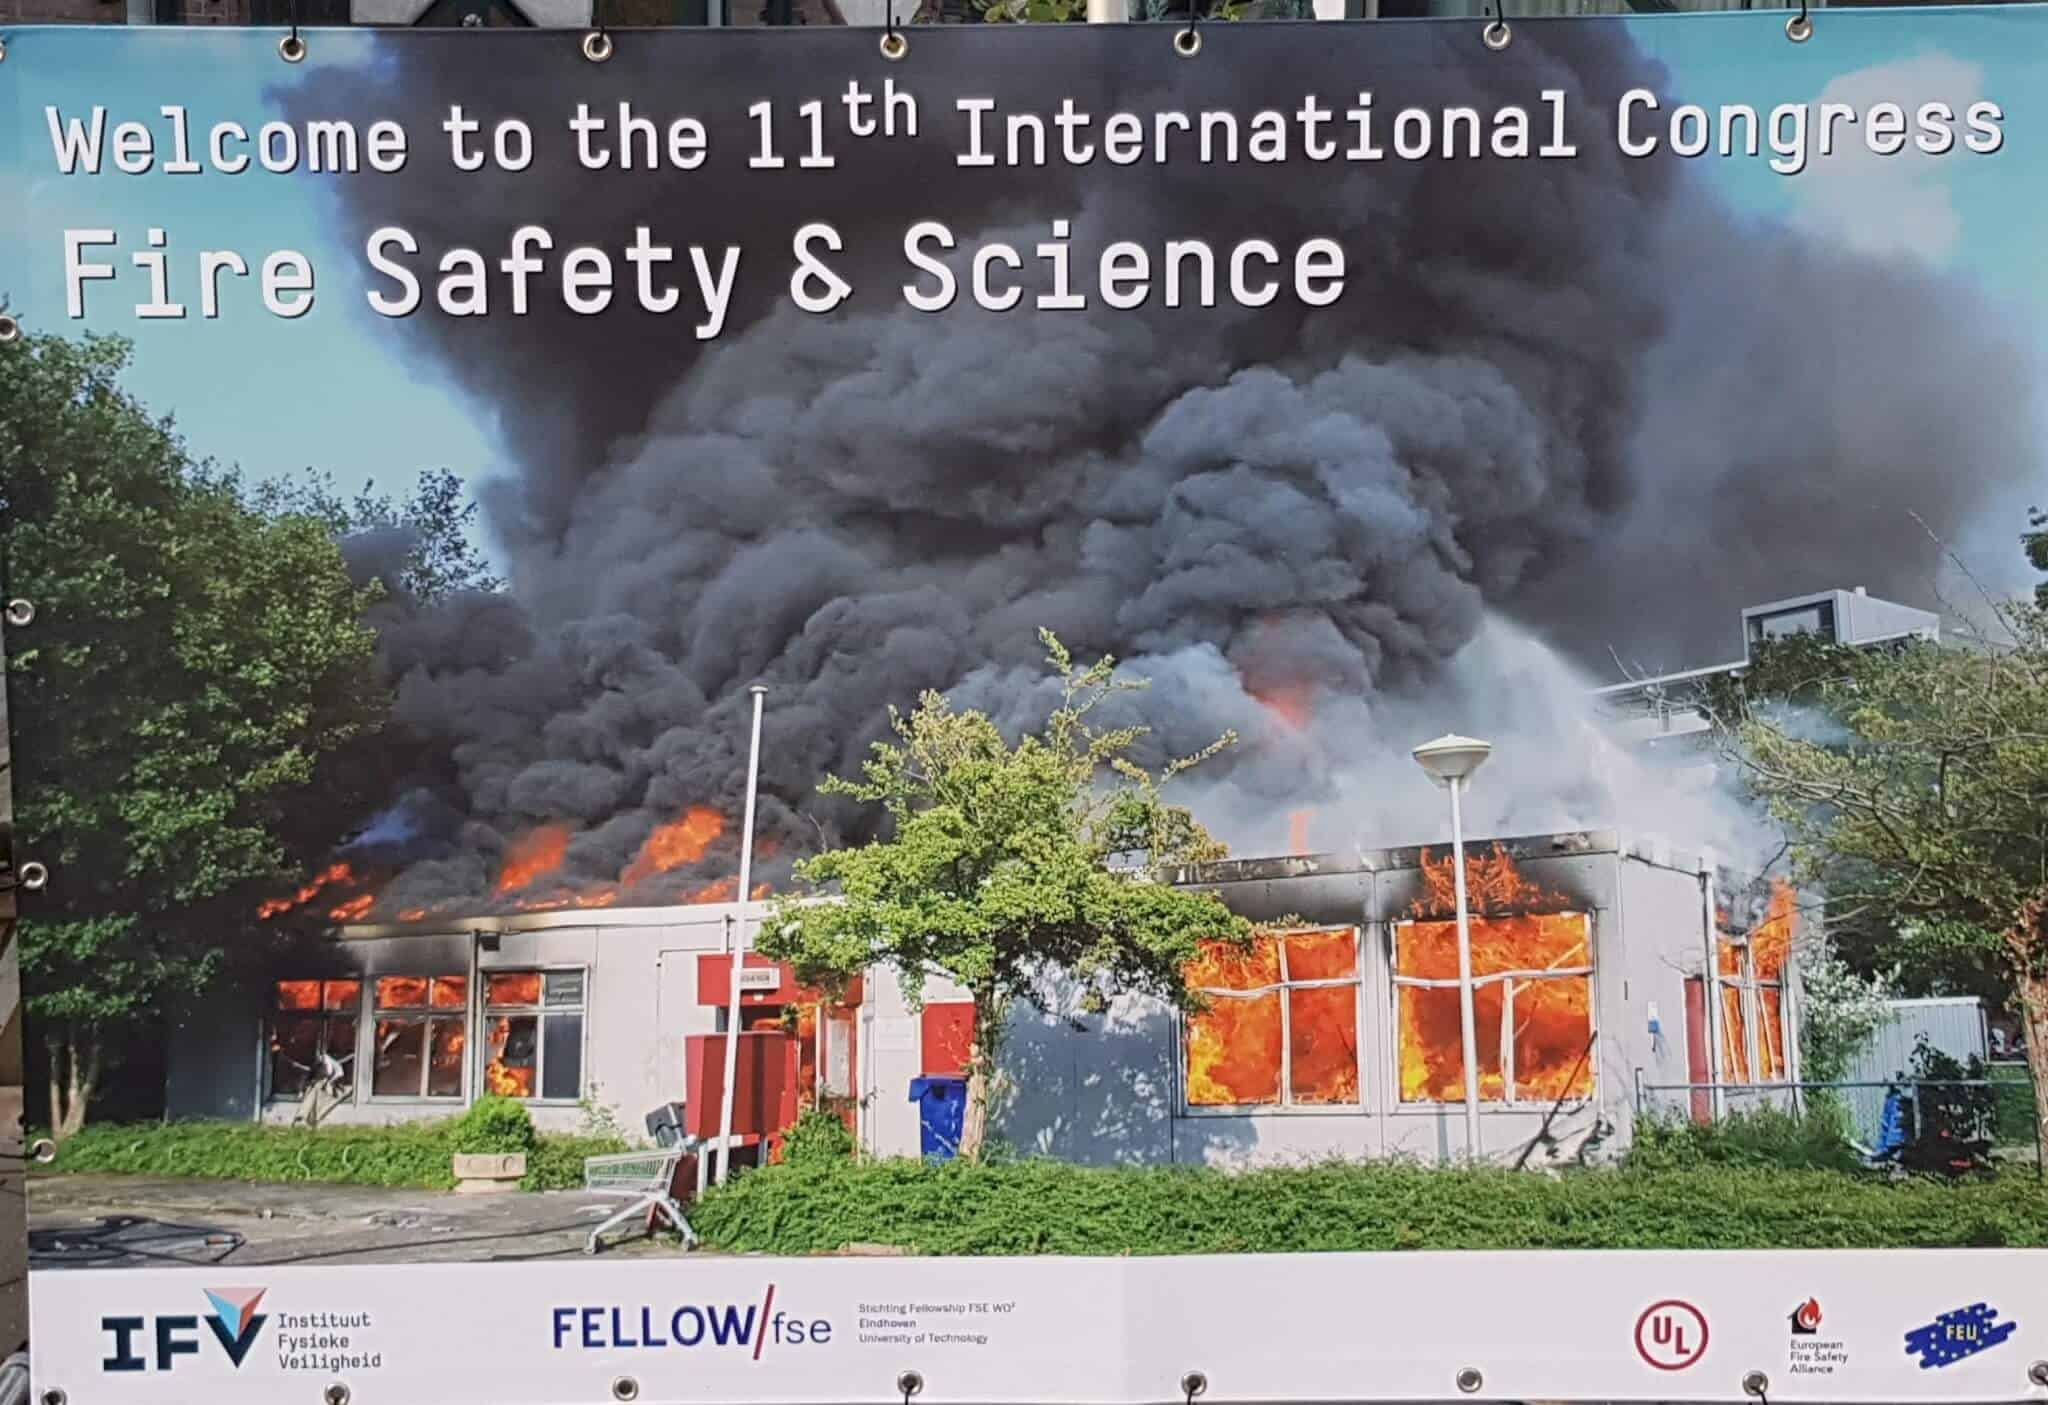 Fire Safety & Science congres 2018